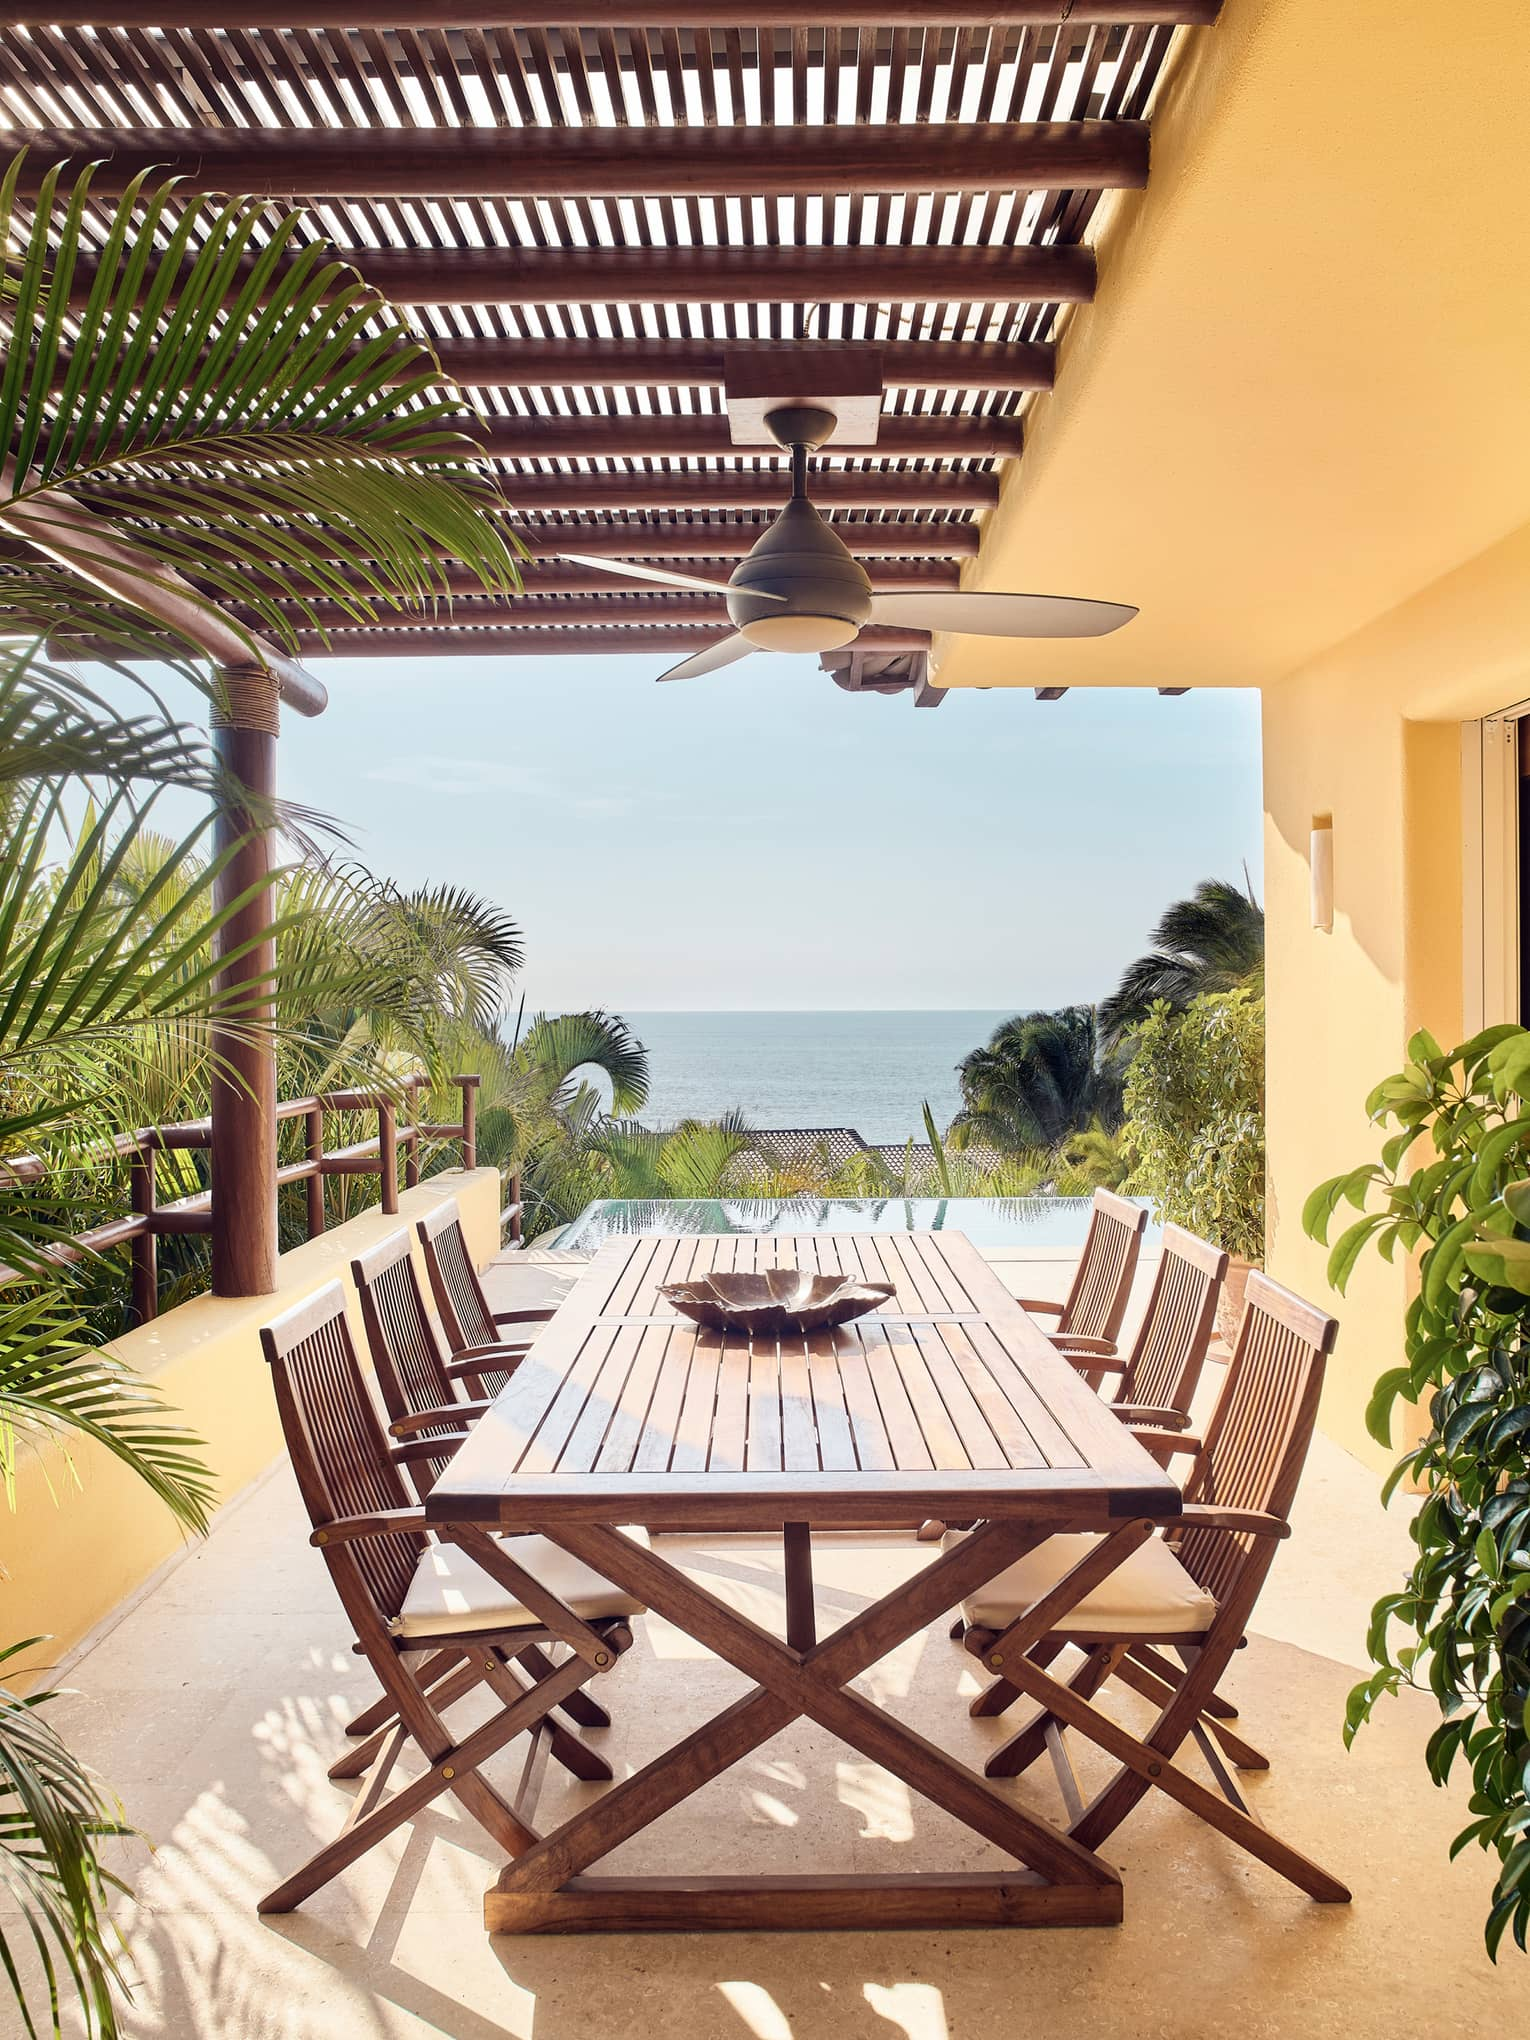 Wood patio table, chairs under pergola and ceiling fan, ocean views